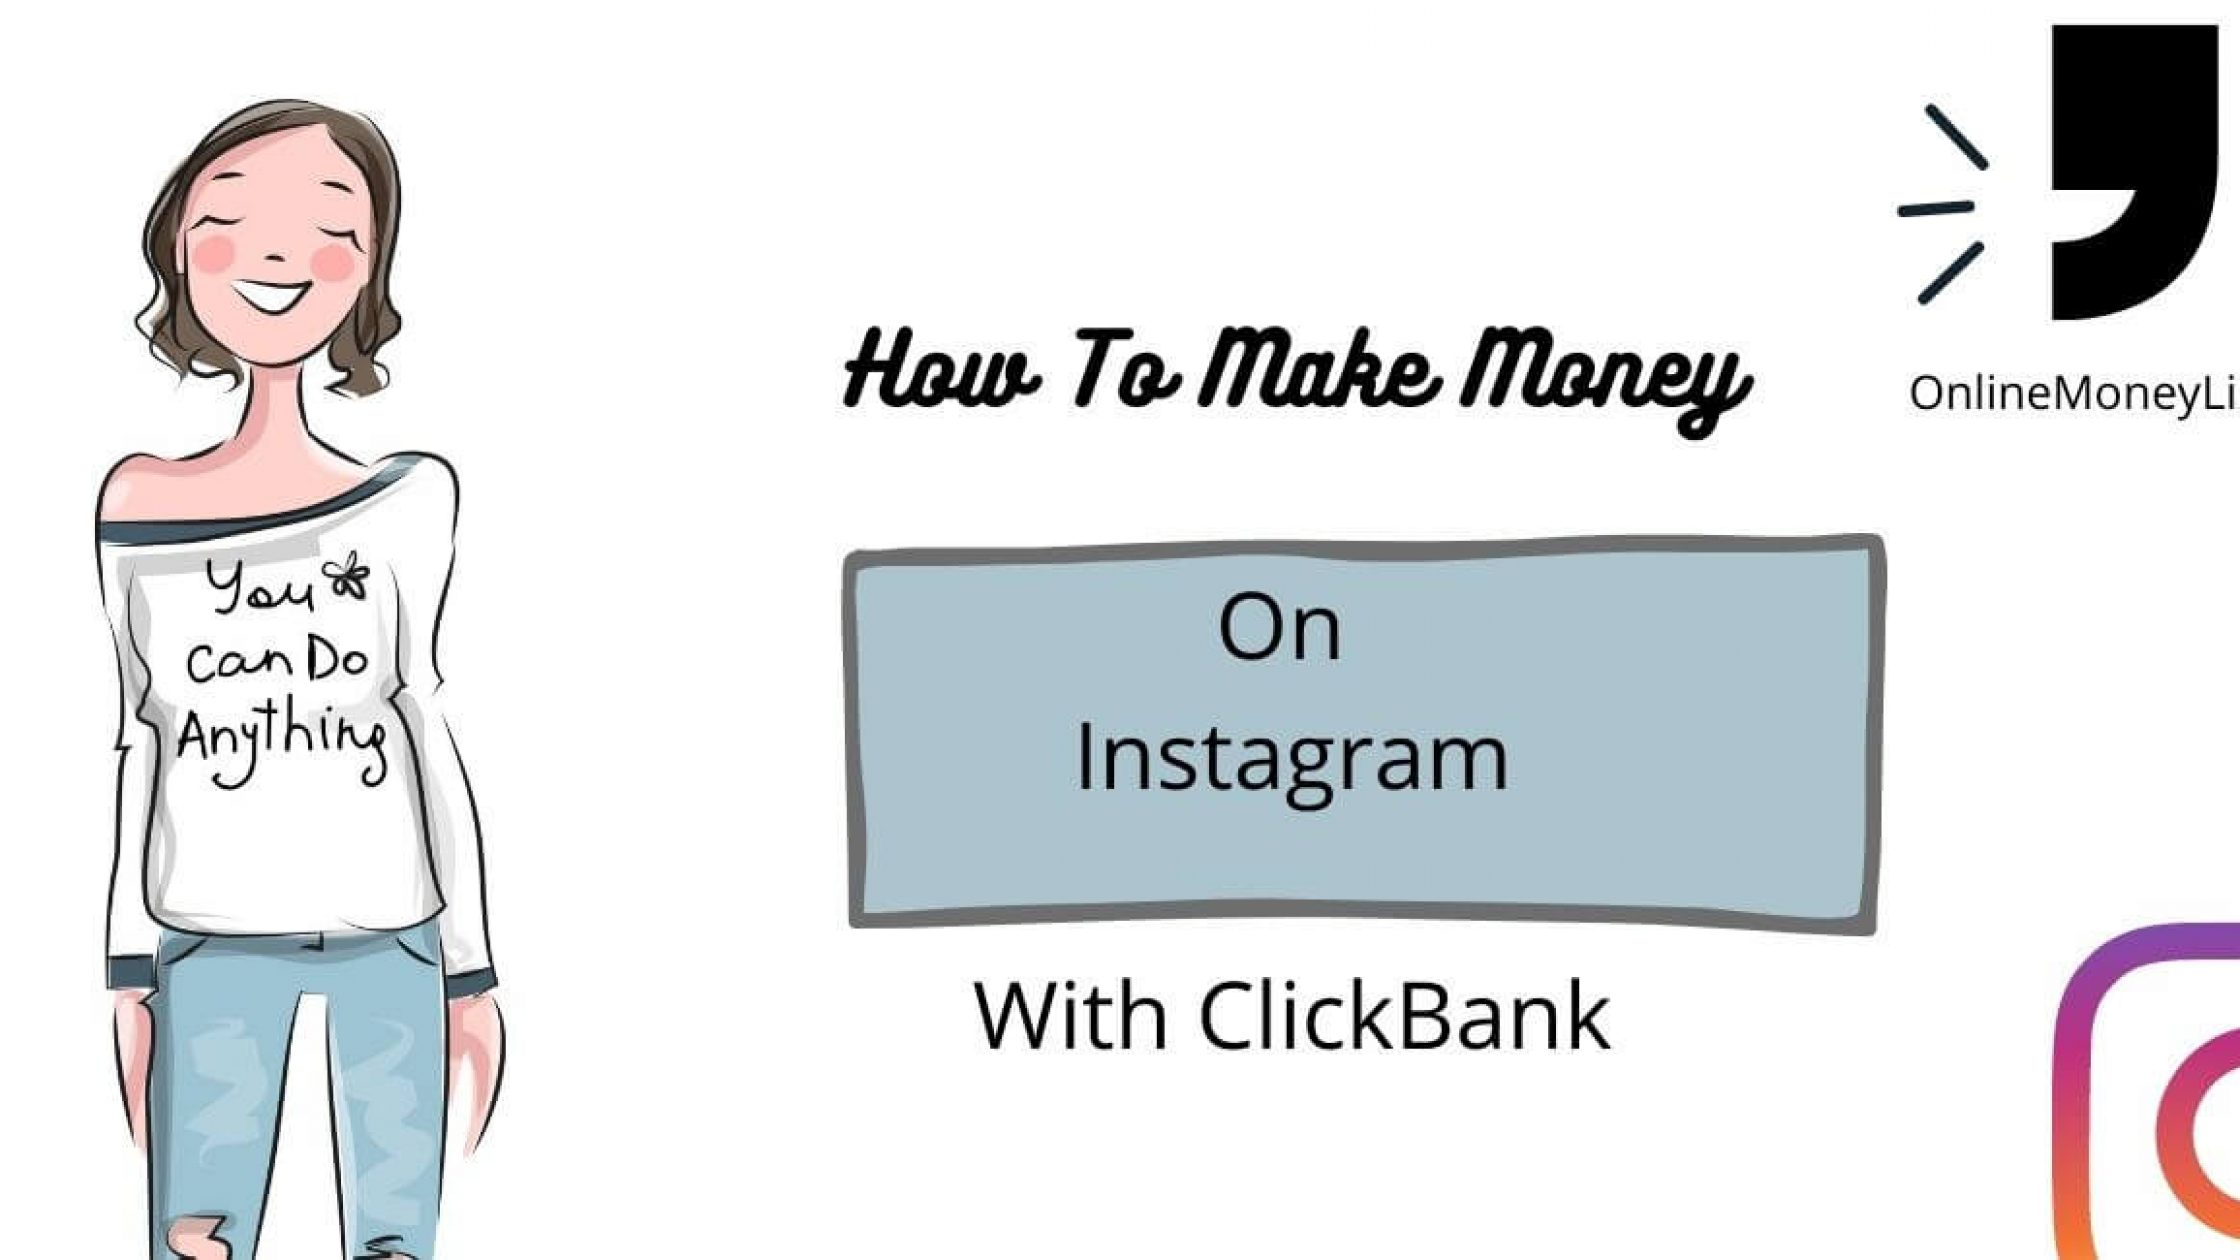 How To Make Money On Instagram With ClickBank? $5470/Mo